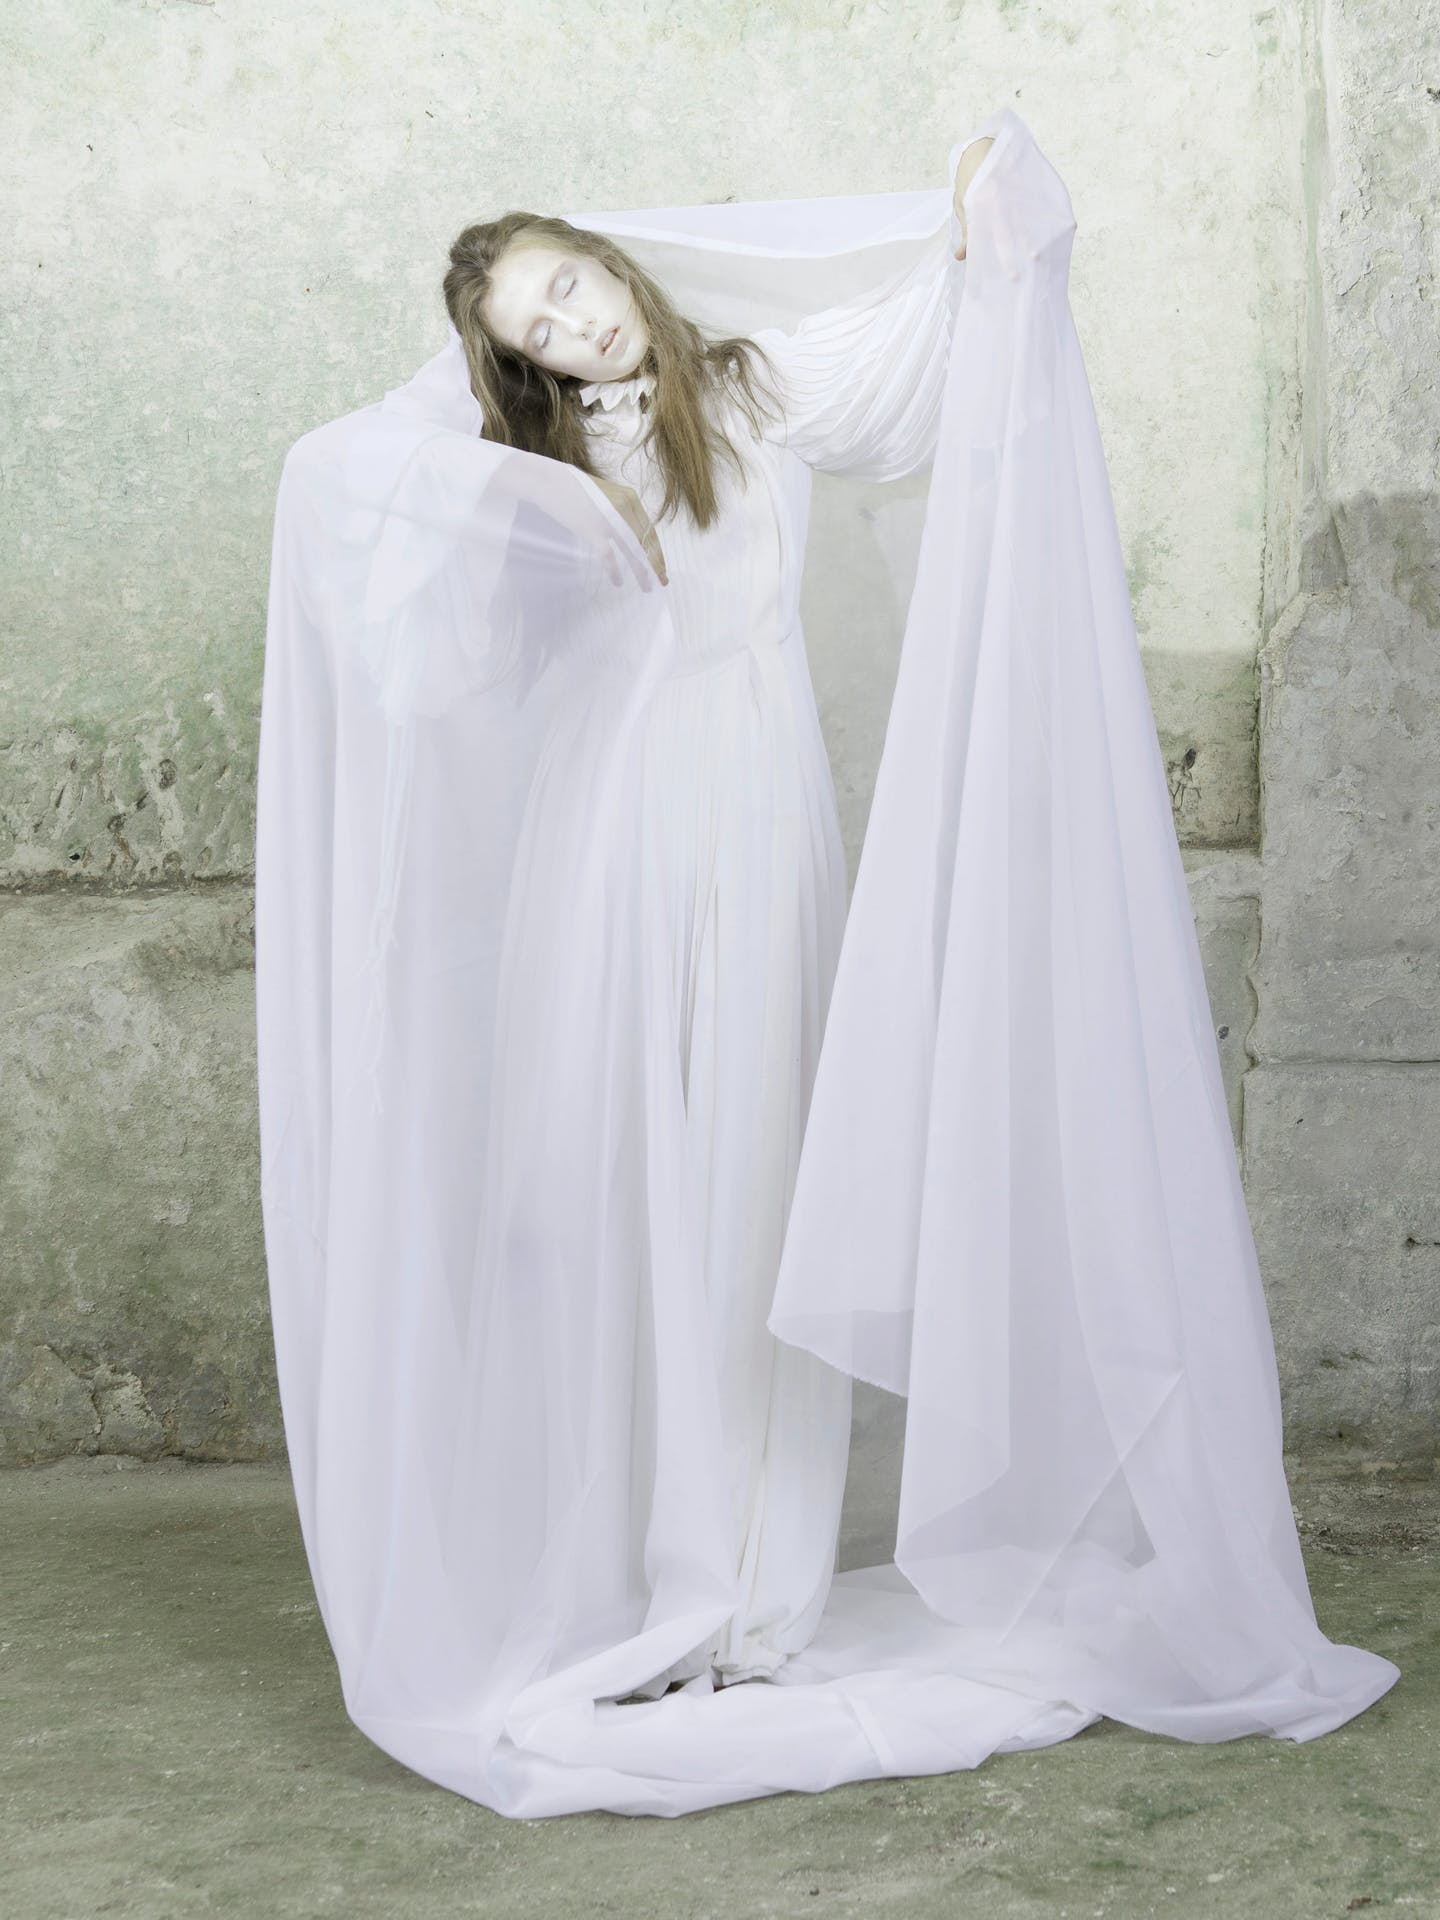 Ghost Stories: Female Ghosts and The Men They Haunt | Topic